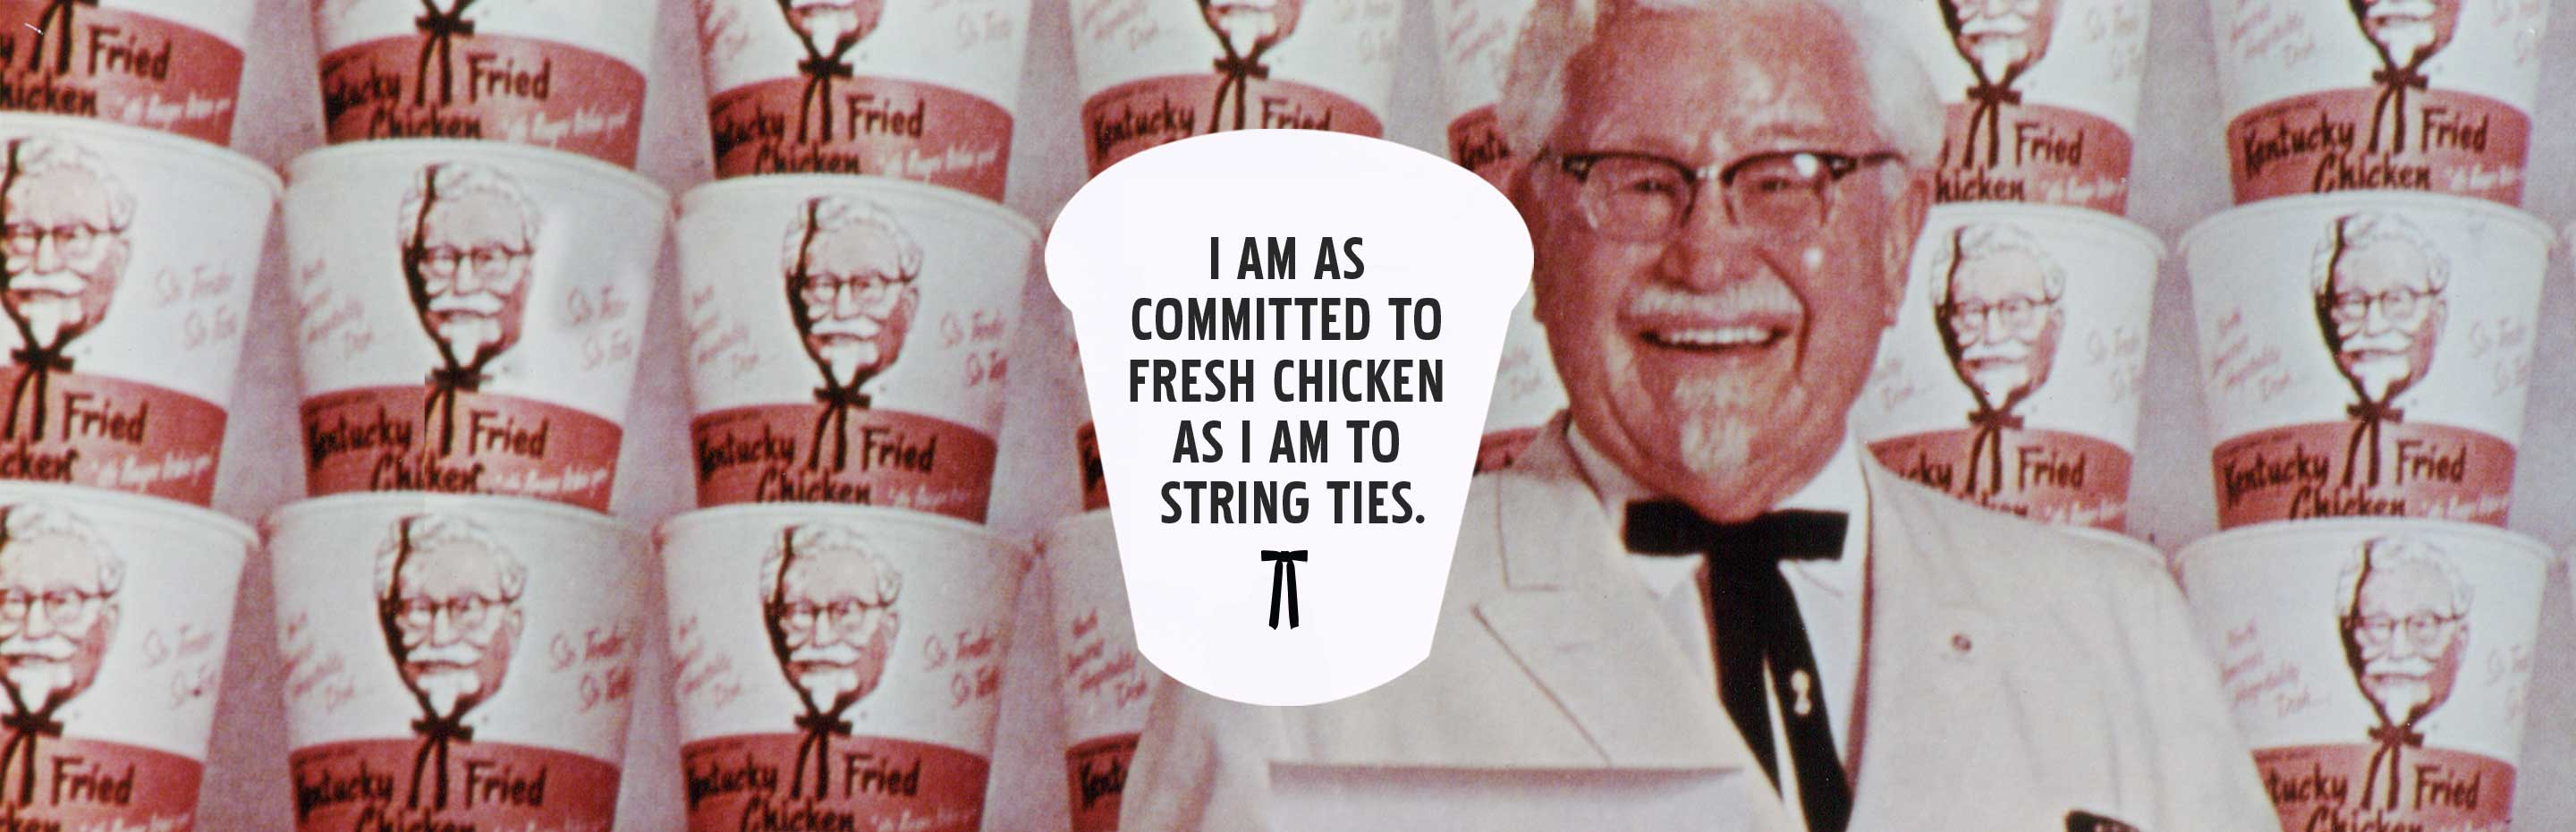 KFC Is Committed to Fresh Chicken